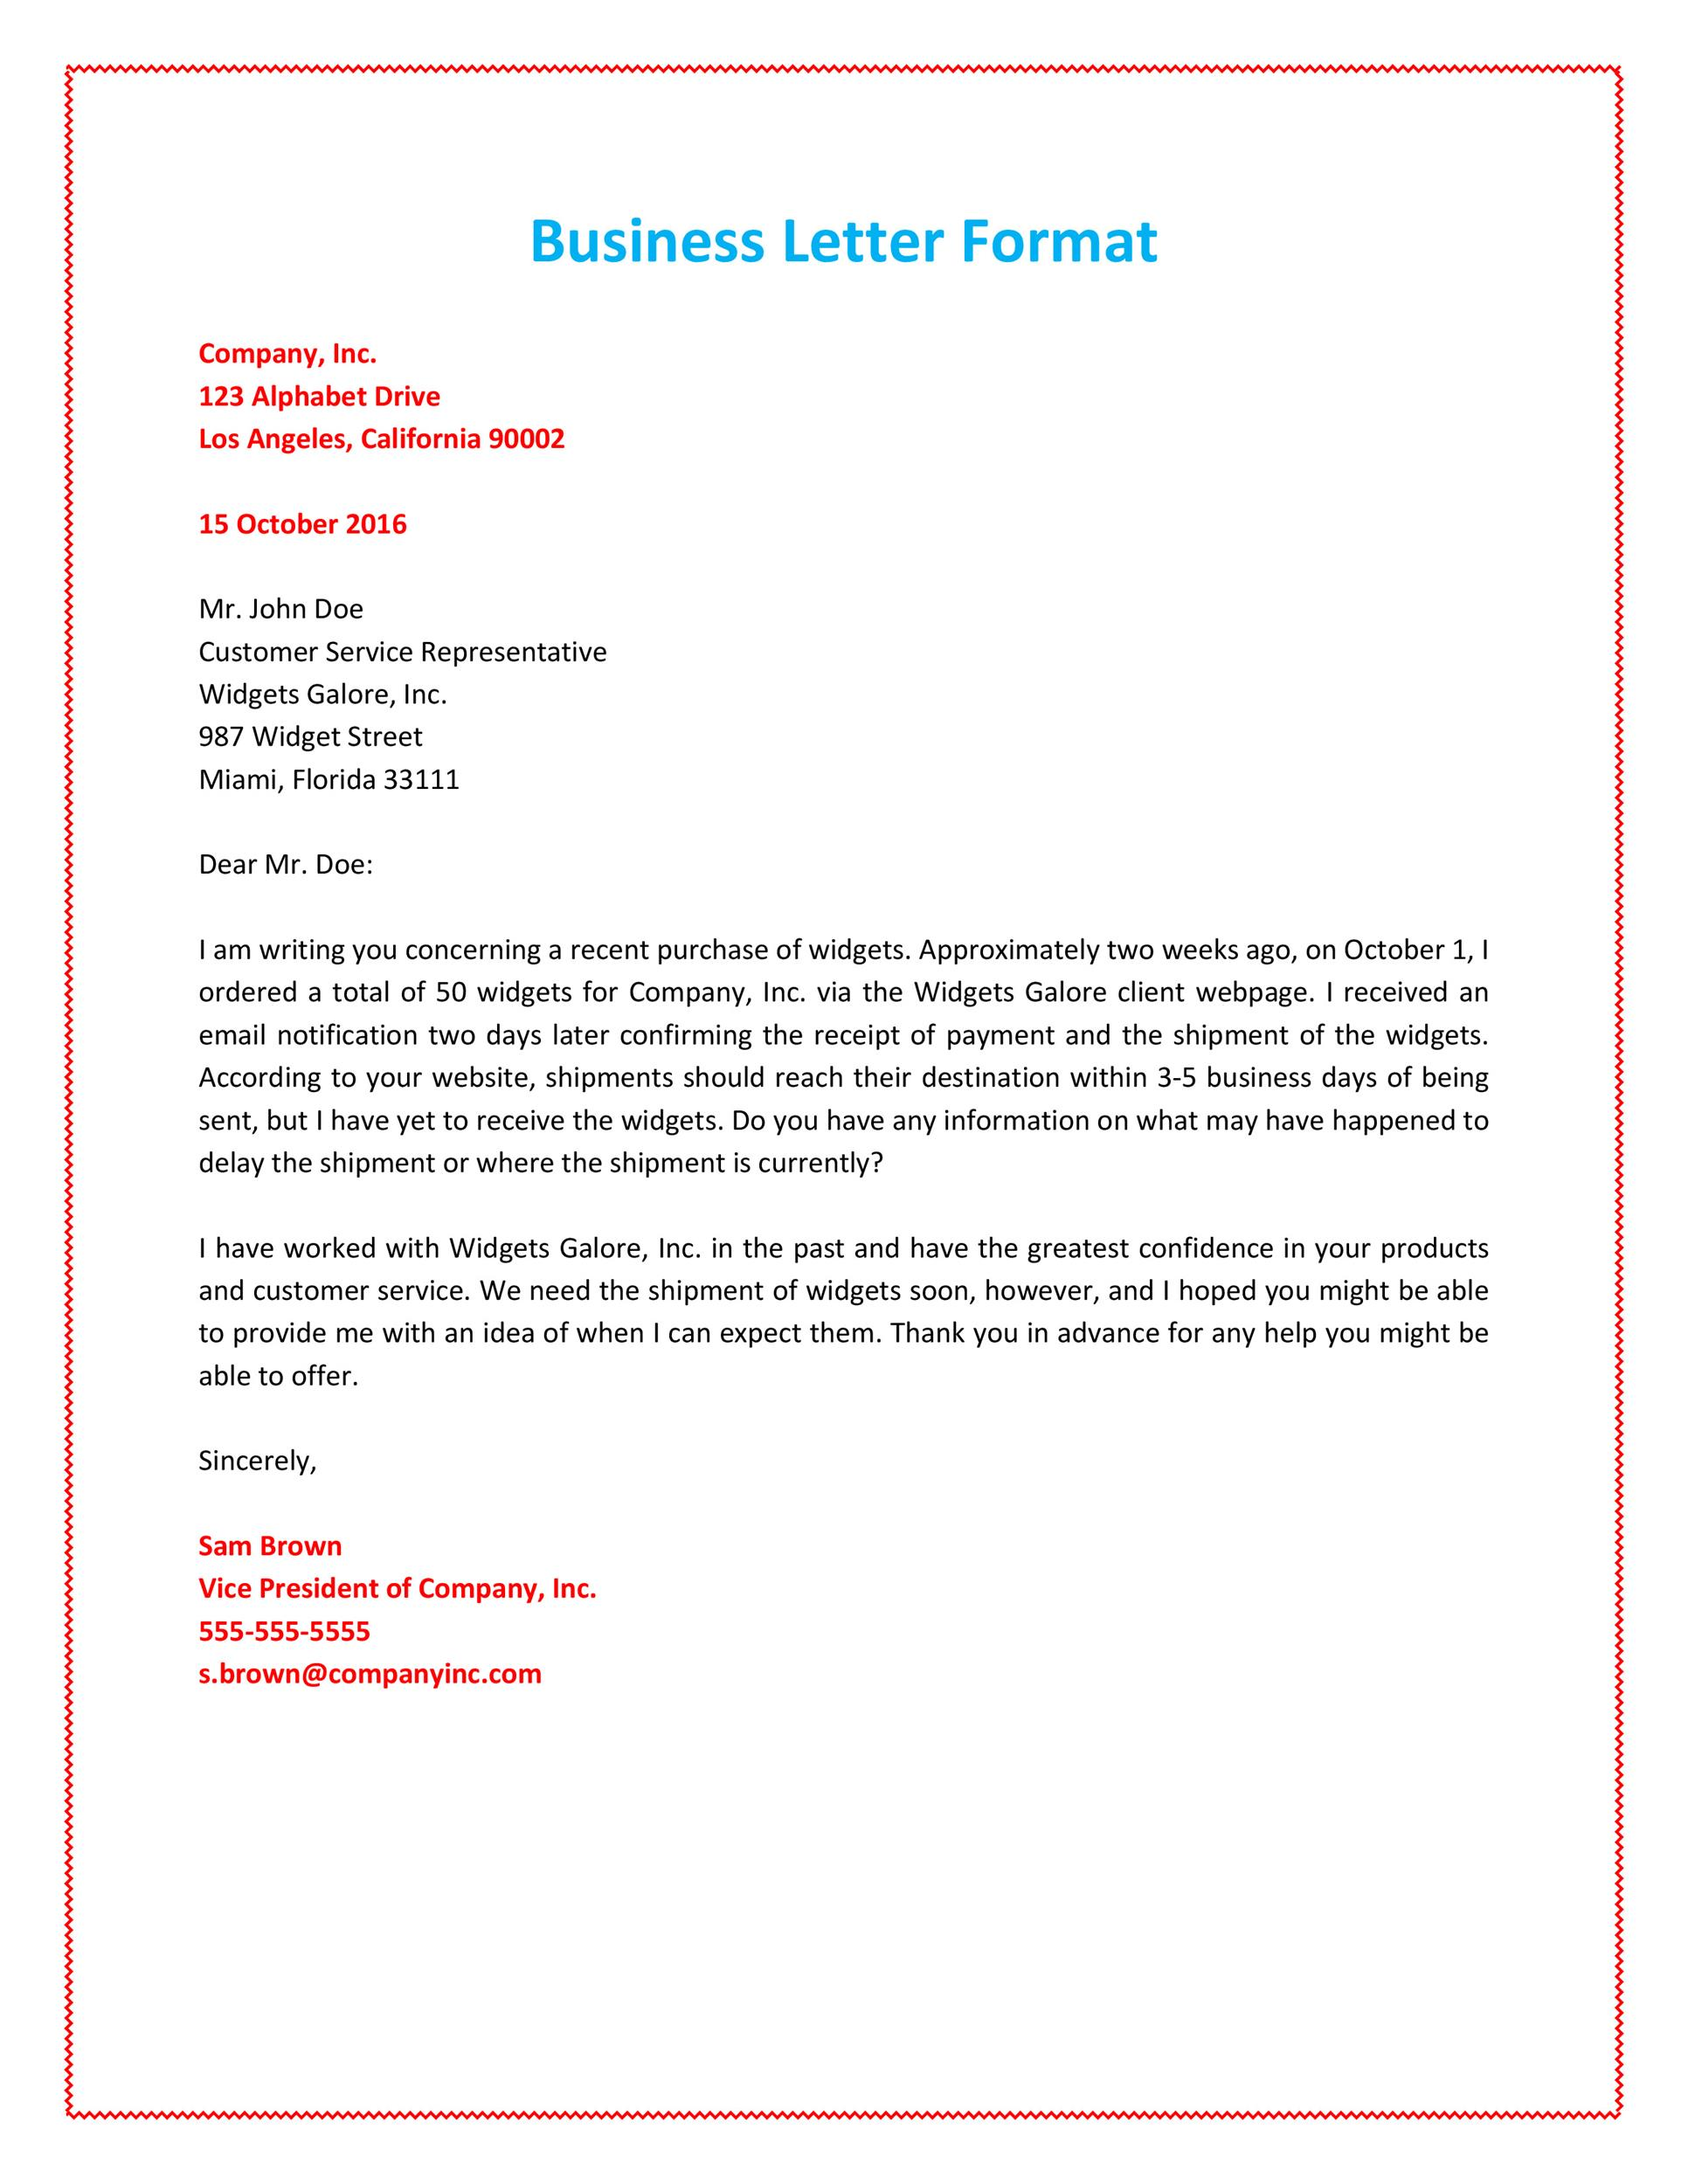 35 formal business letter format templates examples template lab business letter format example wajeb Choice Image